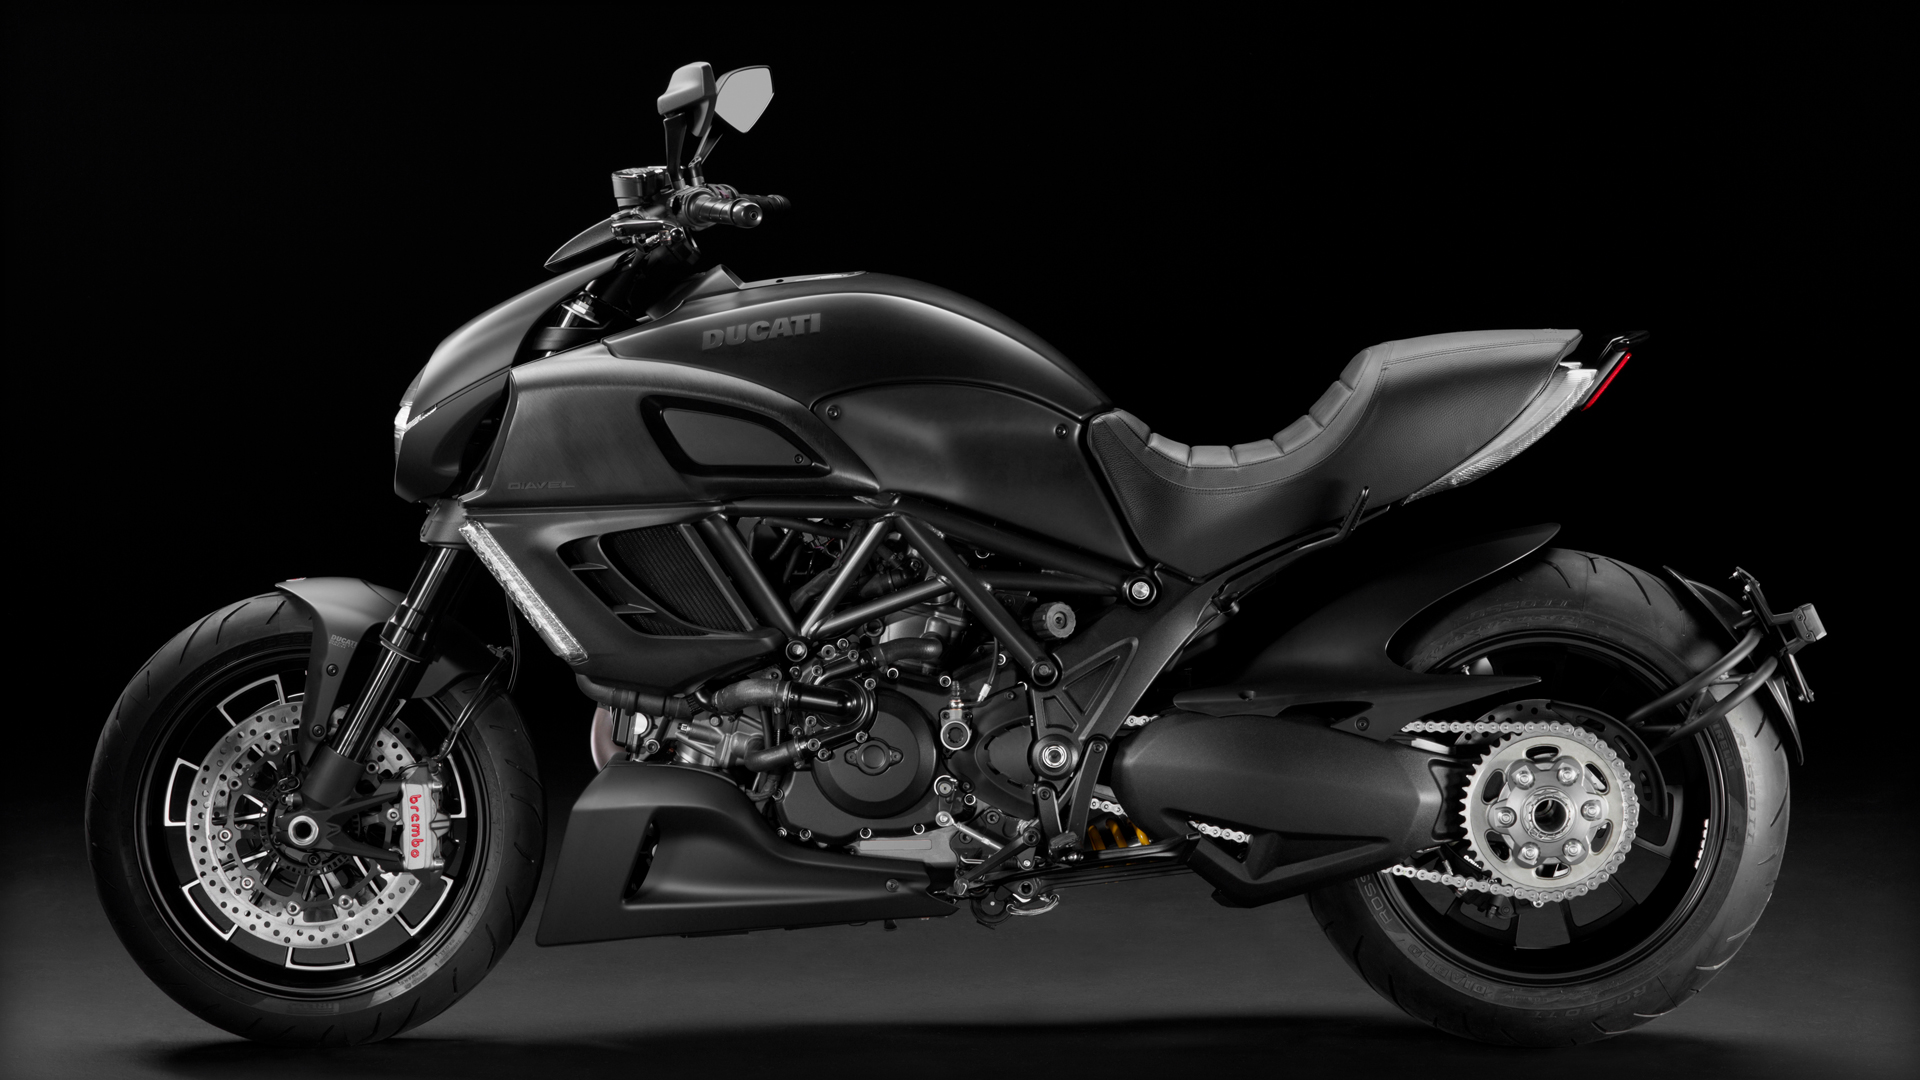 Diavel-Dark_2013_Studio_MB_G01_1920x1080.mediagallery_output_image_[1920x1080]